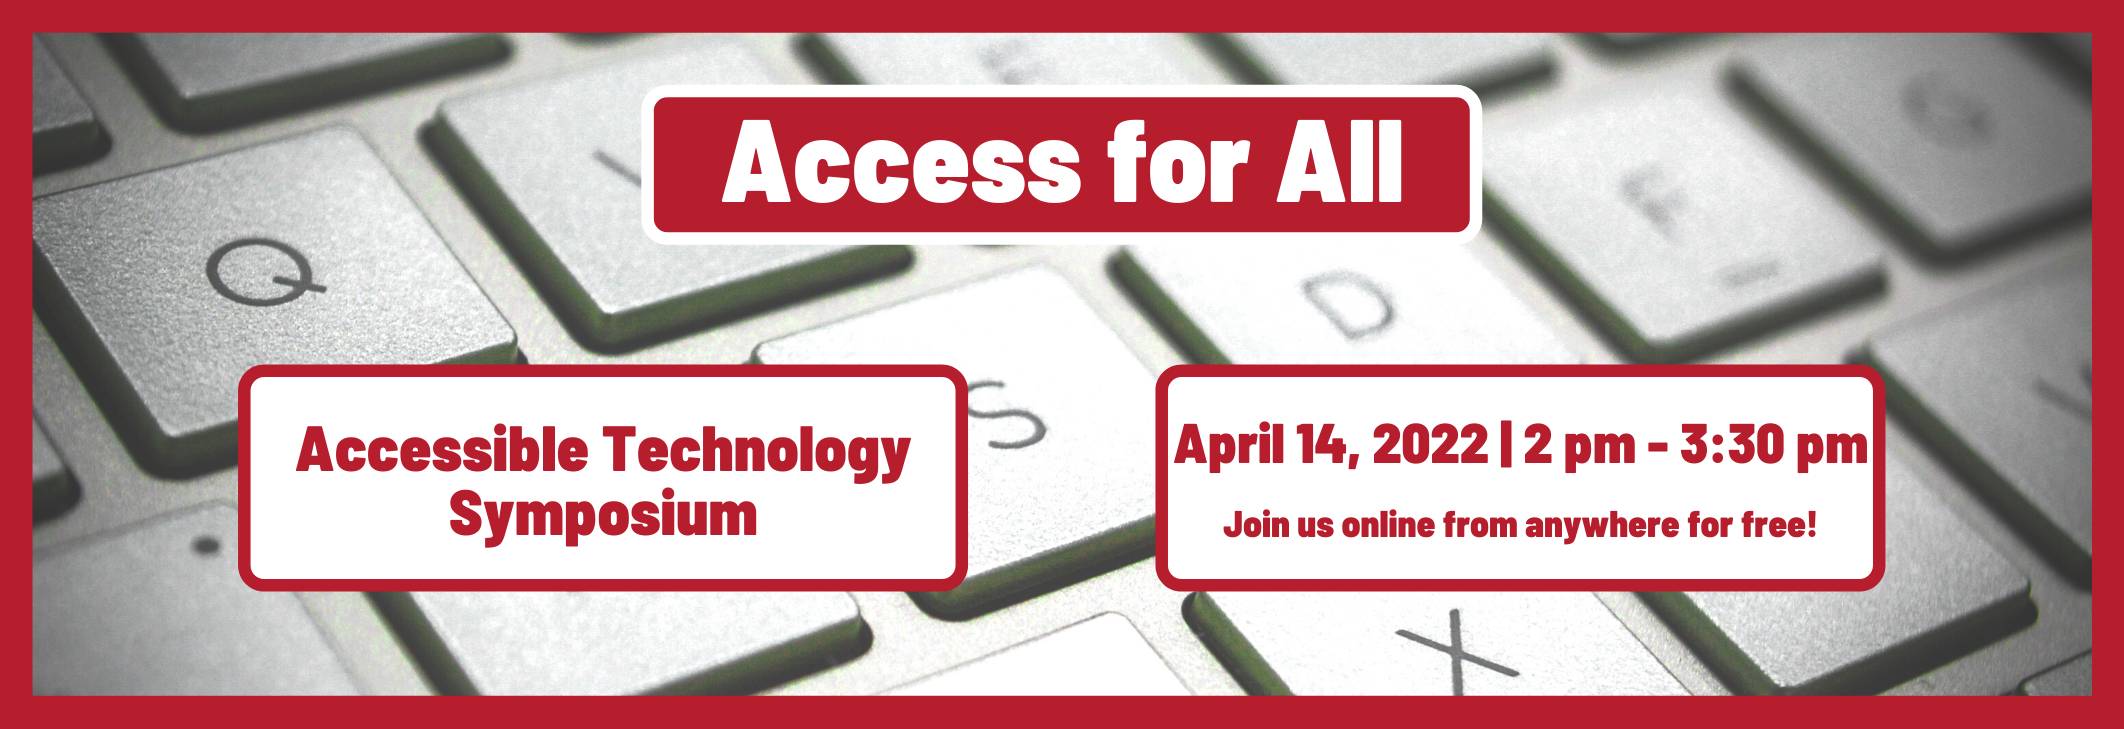 Access for All, Accessible Technology Symposium, April 12, 2021 to April 16, 2021, Join us online from anywhere for free